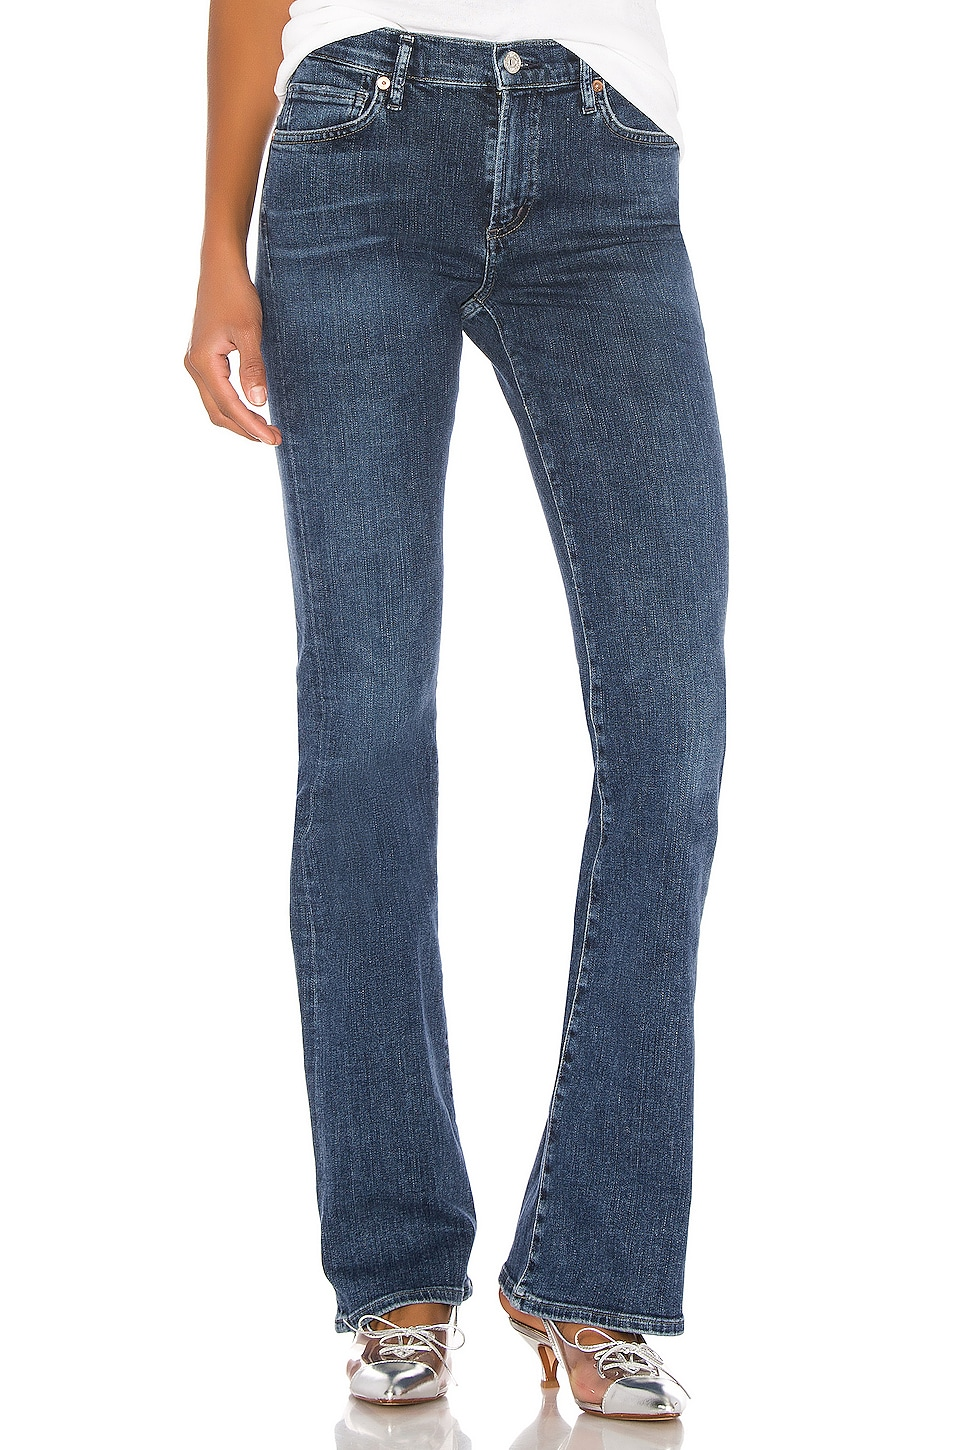 Citizens of Humanity Emannuelle Slim Boot in Alto